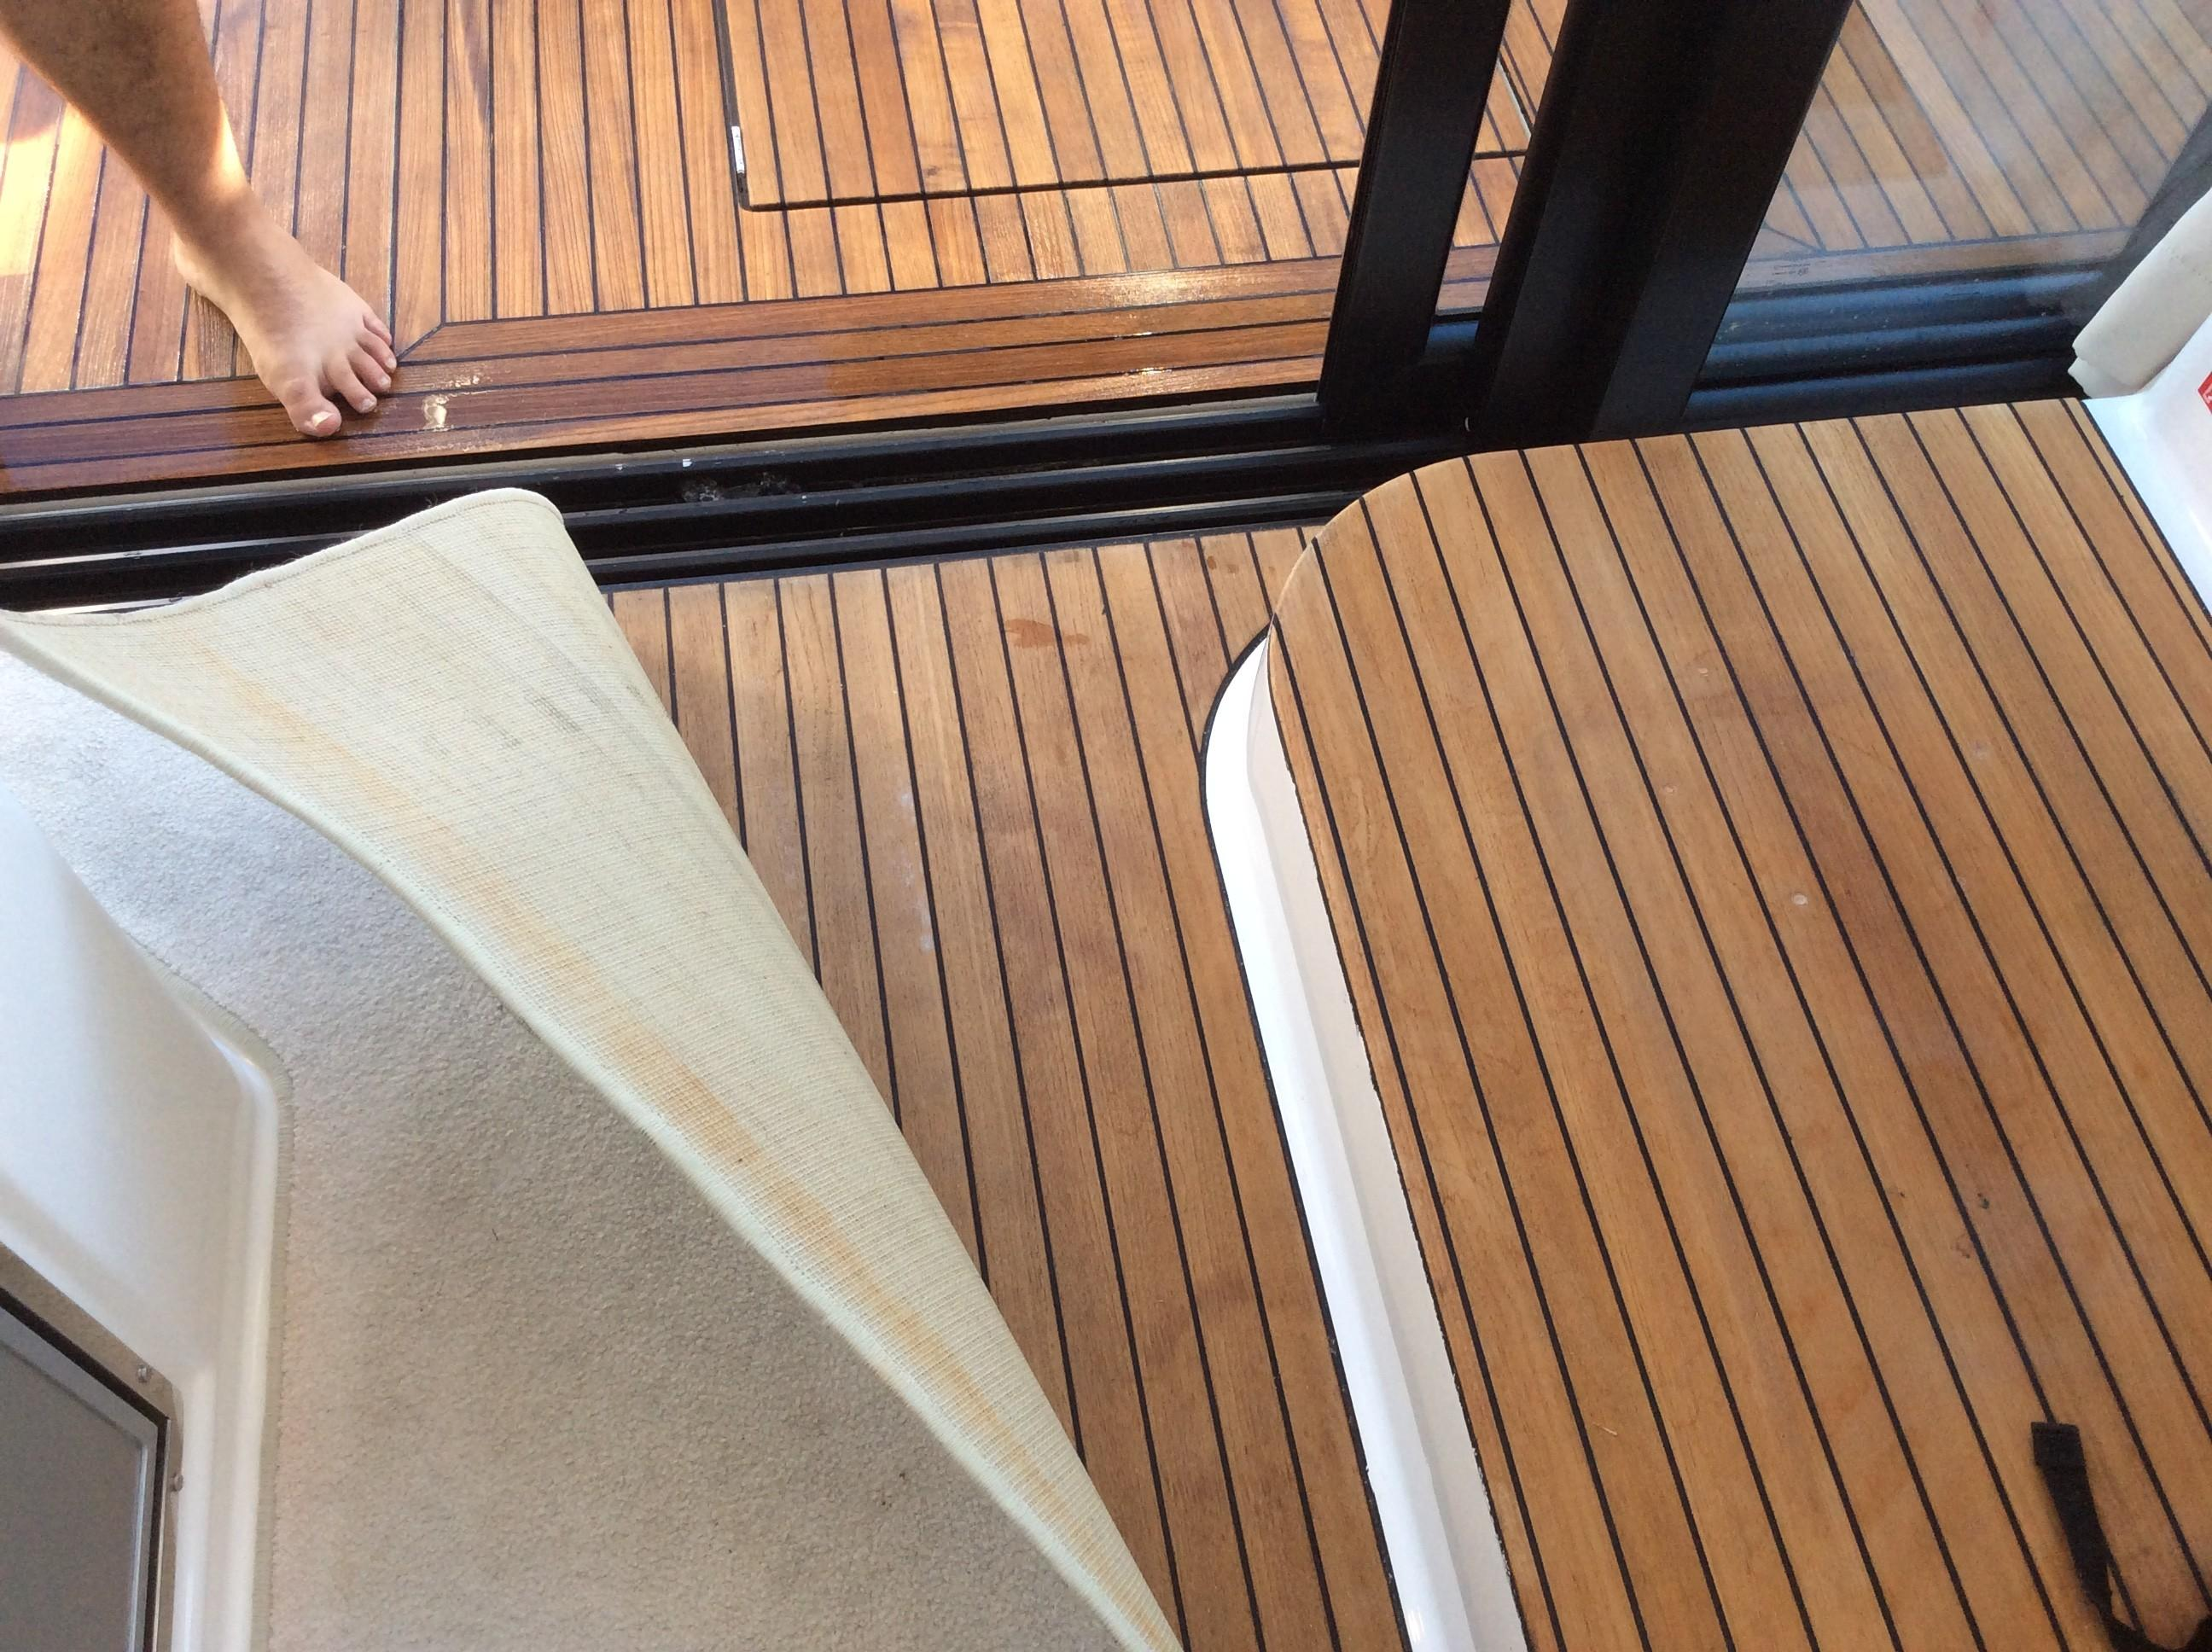 Teak Decks - Inside and Outside Cockpit and Helm Area